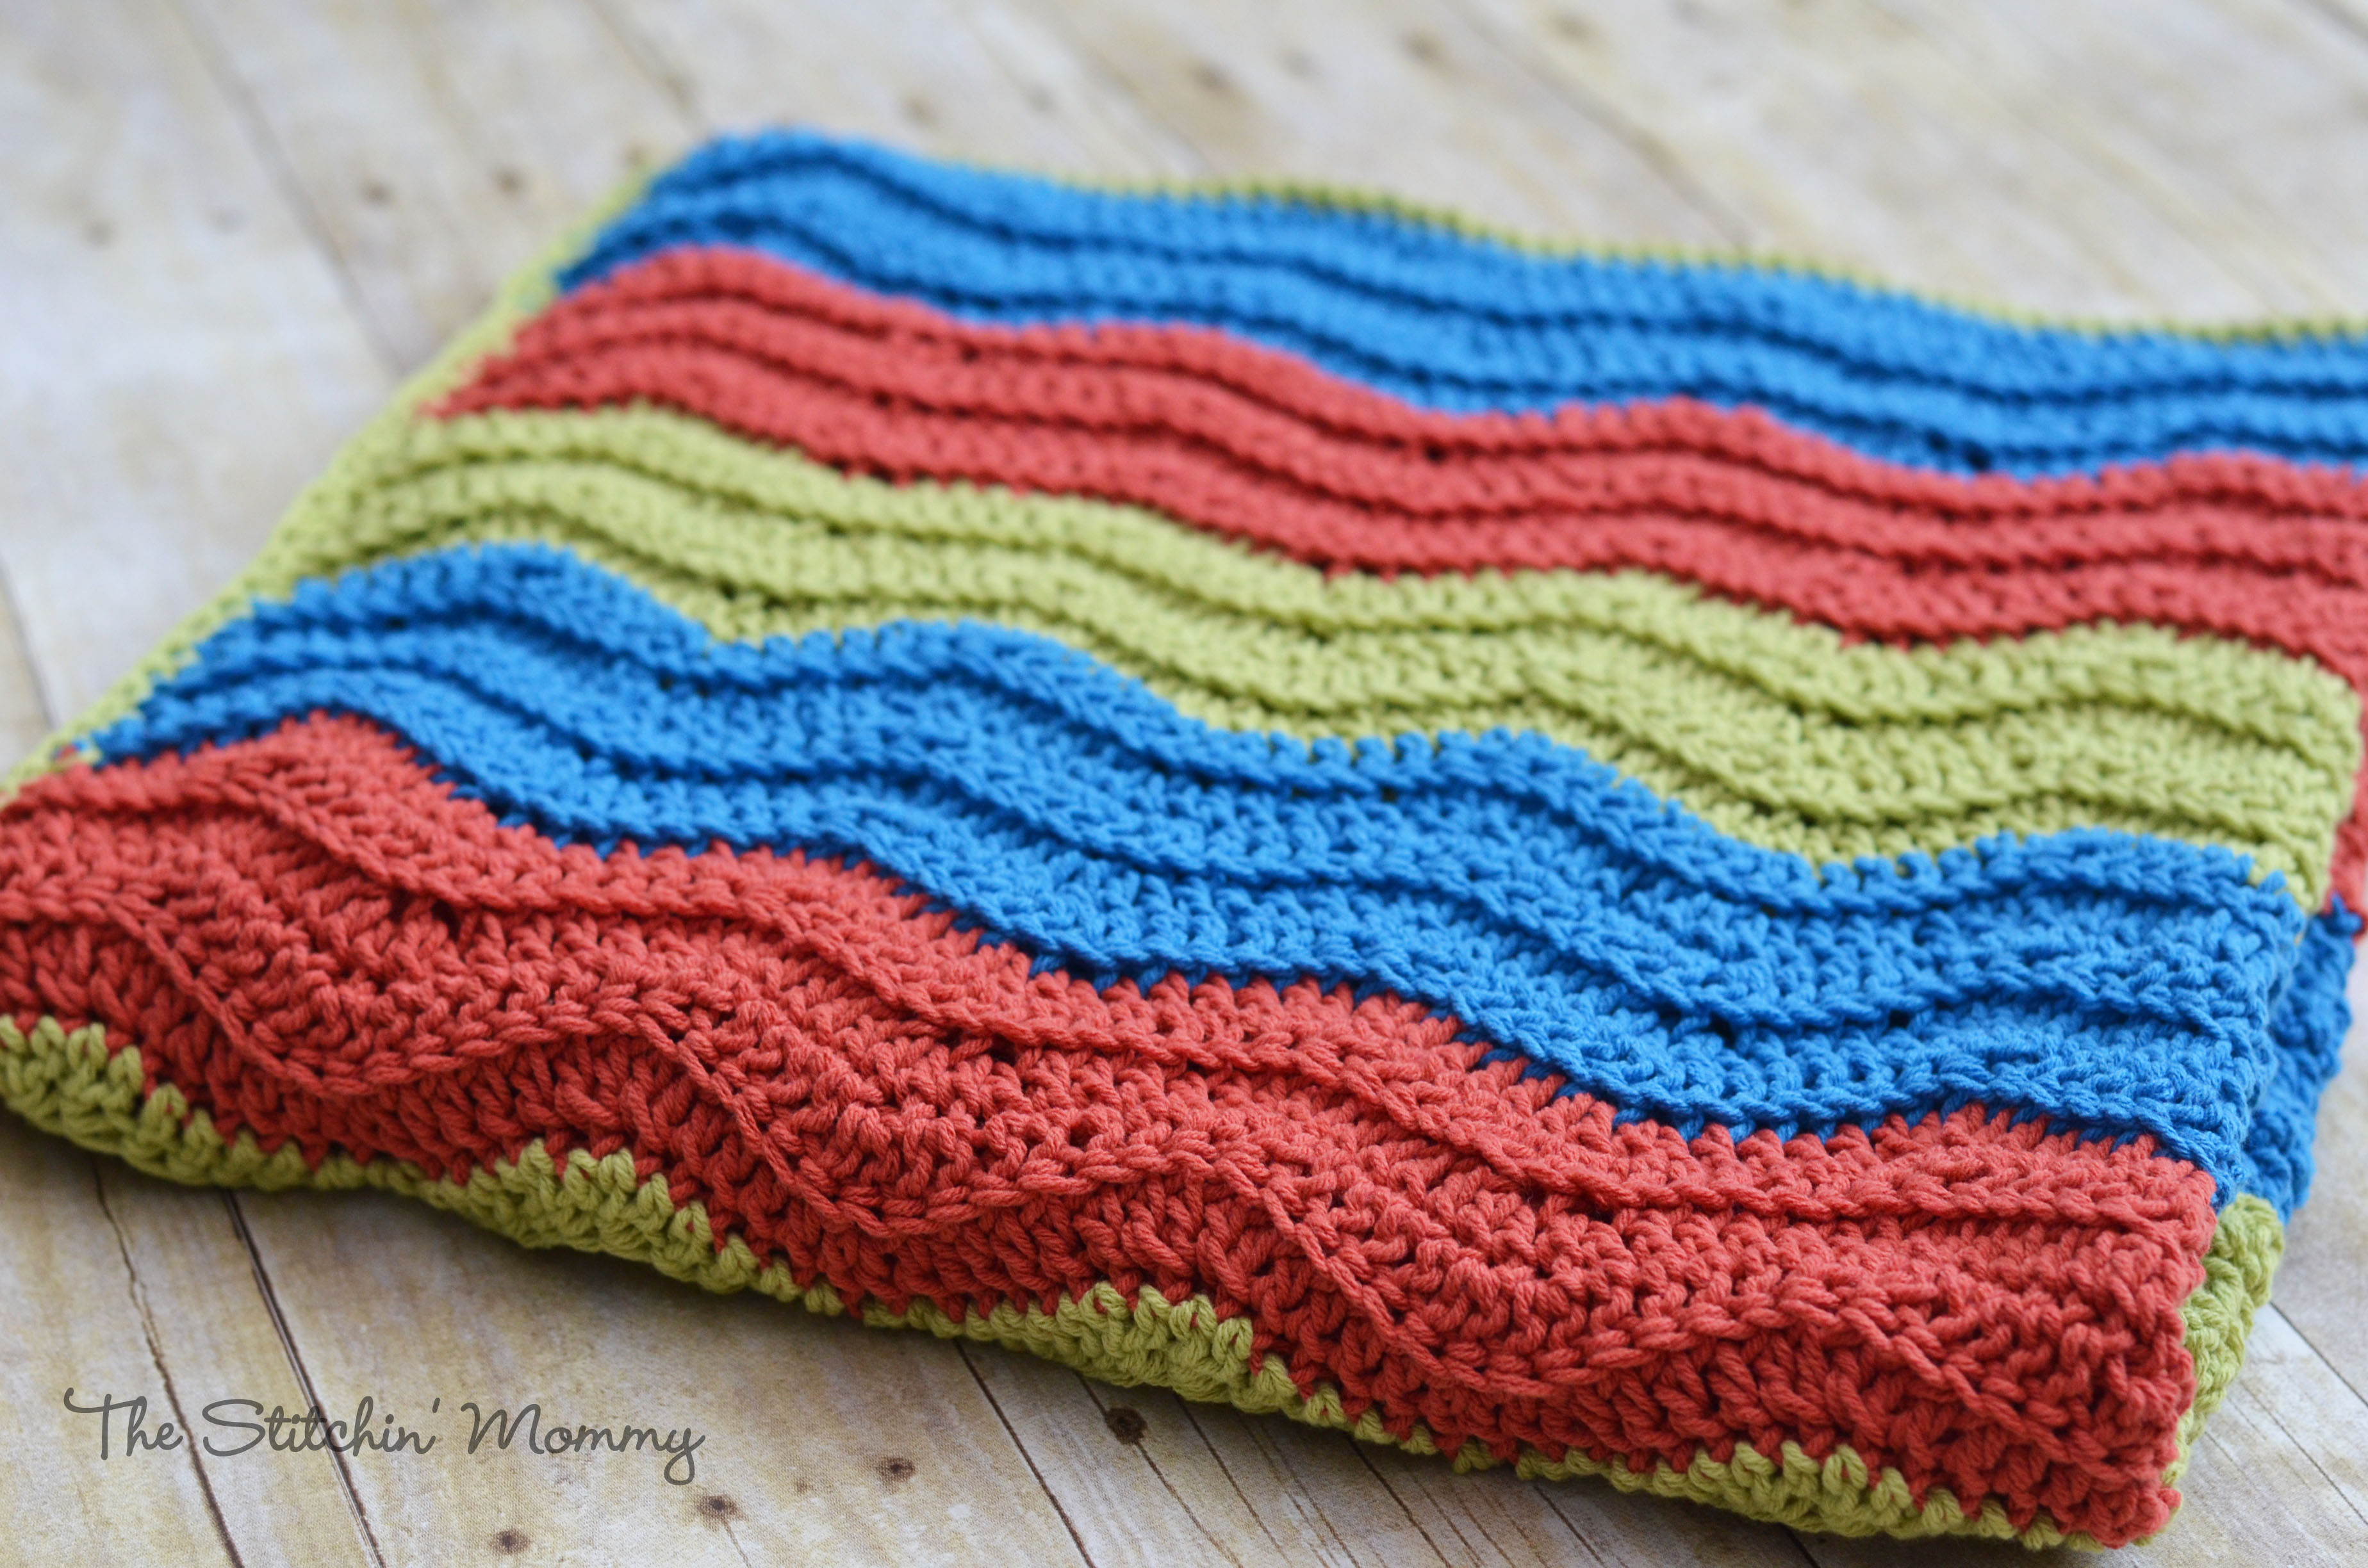 Crochet for Beginners Baby Blanket Awesome Easy Crochet Ripple Blanket the Stitchin Mommy Of Unique 42 Pics Crochet for Beginners Baby Blanket